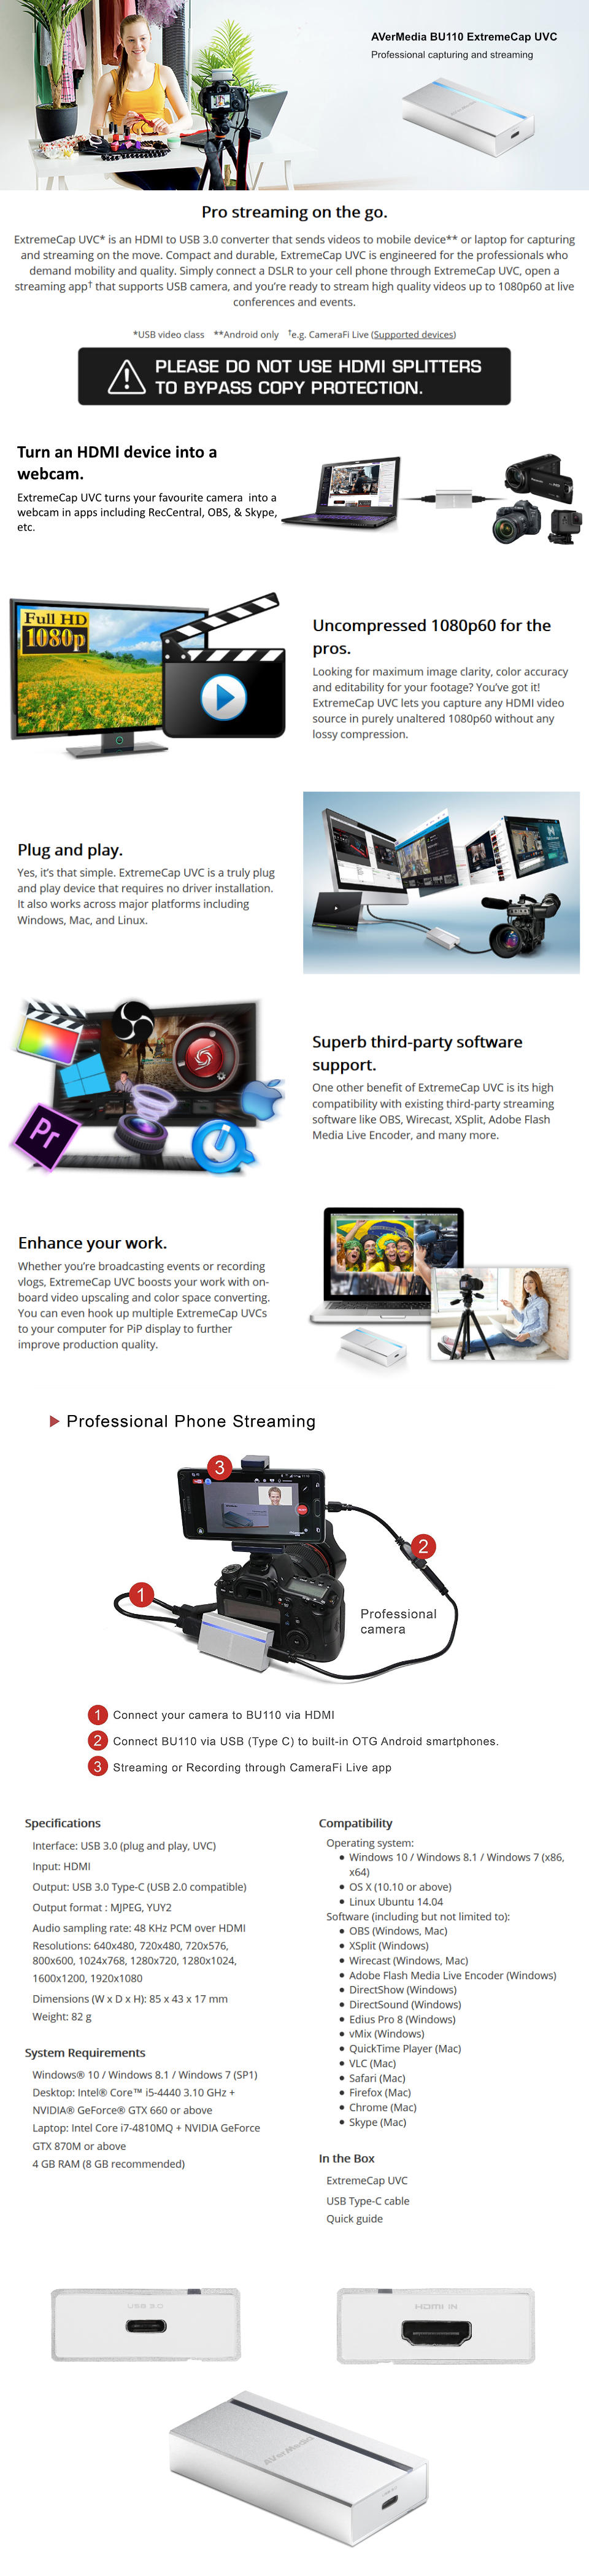 A large marketing image providing additional information about the product AVerMedia BU110 ExtremeCap HDMI to USB Converter - Additional alt info not provided